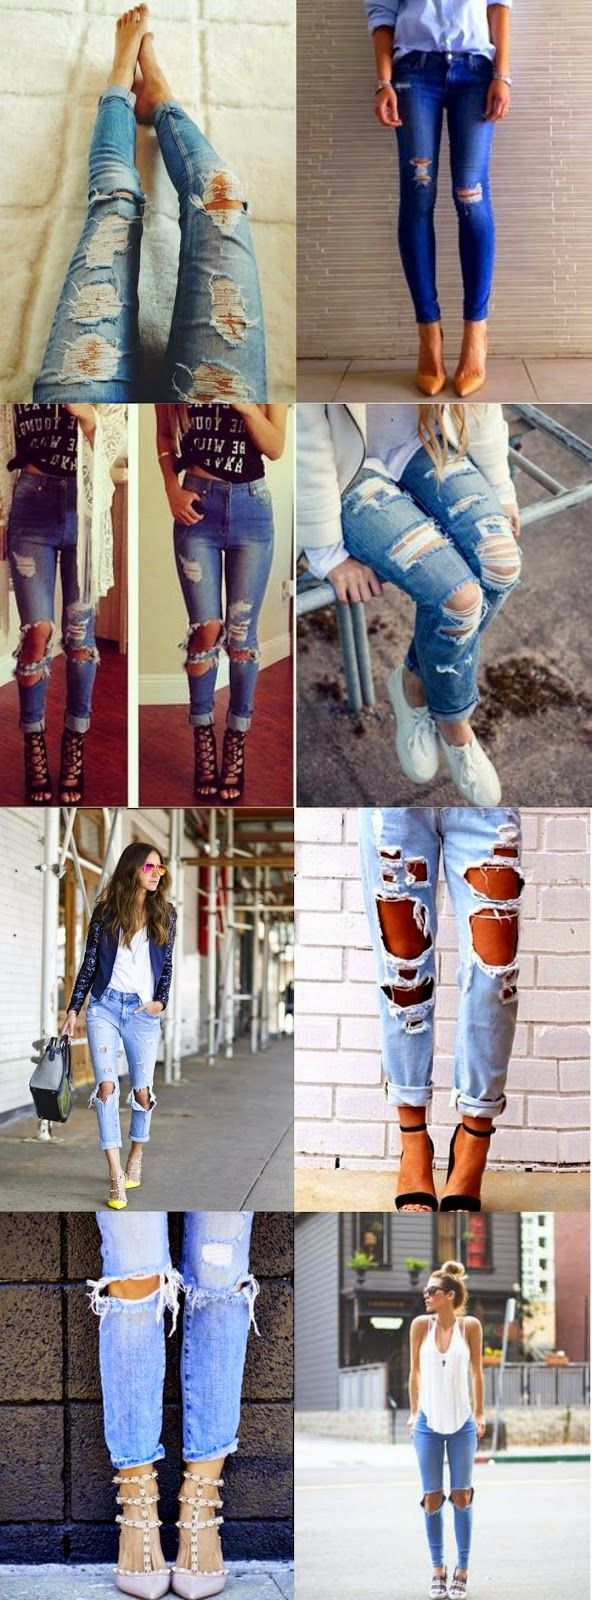 lowbudget-lowcost fashion blog: DIY: ripped jeans, i 3 errori da non fare.